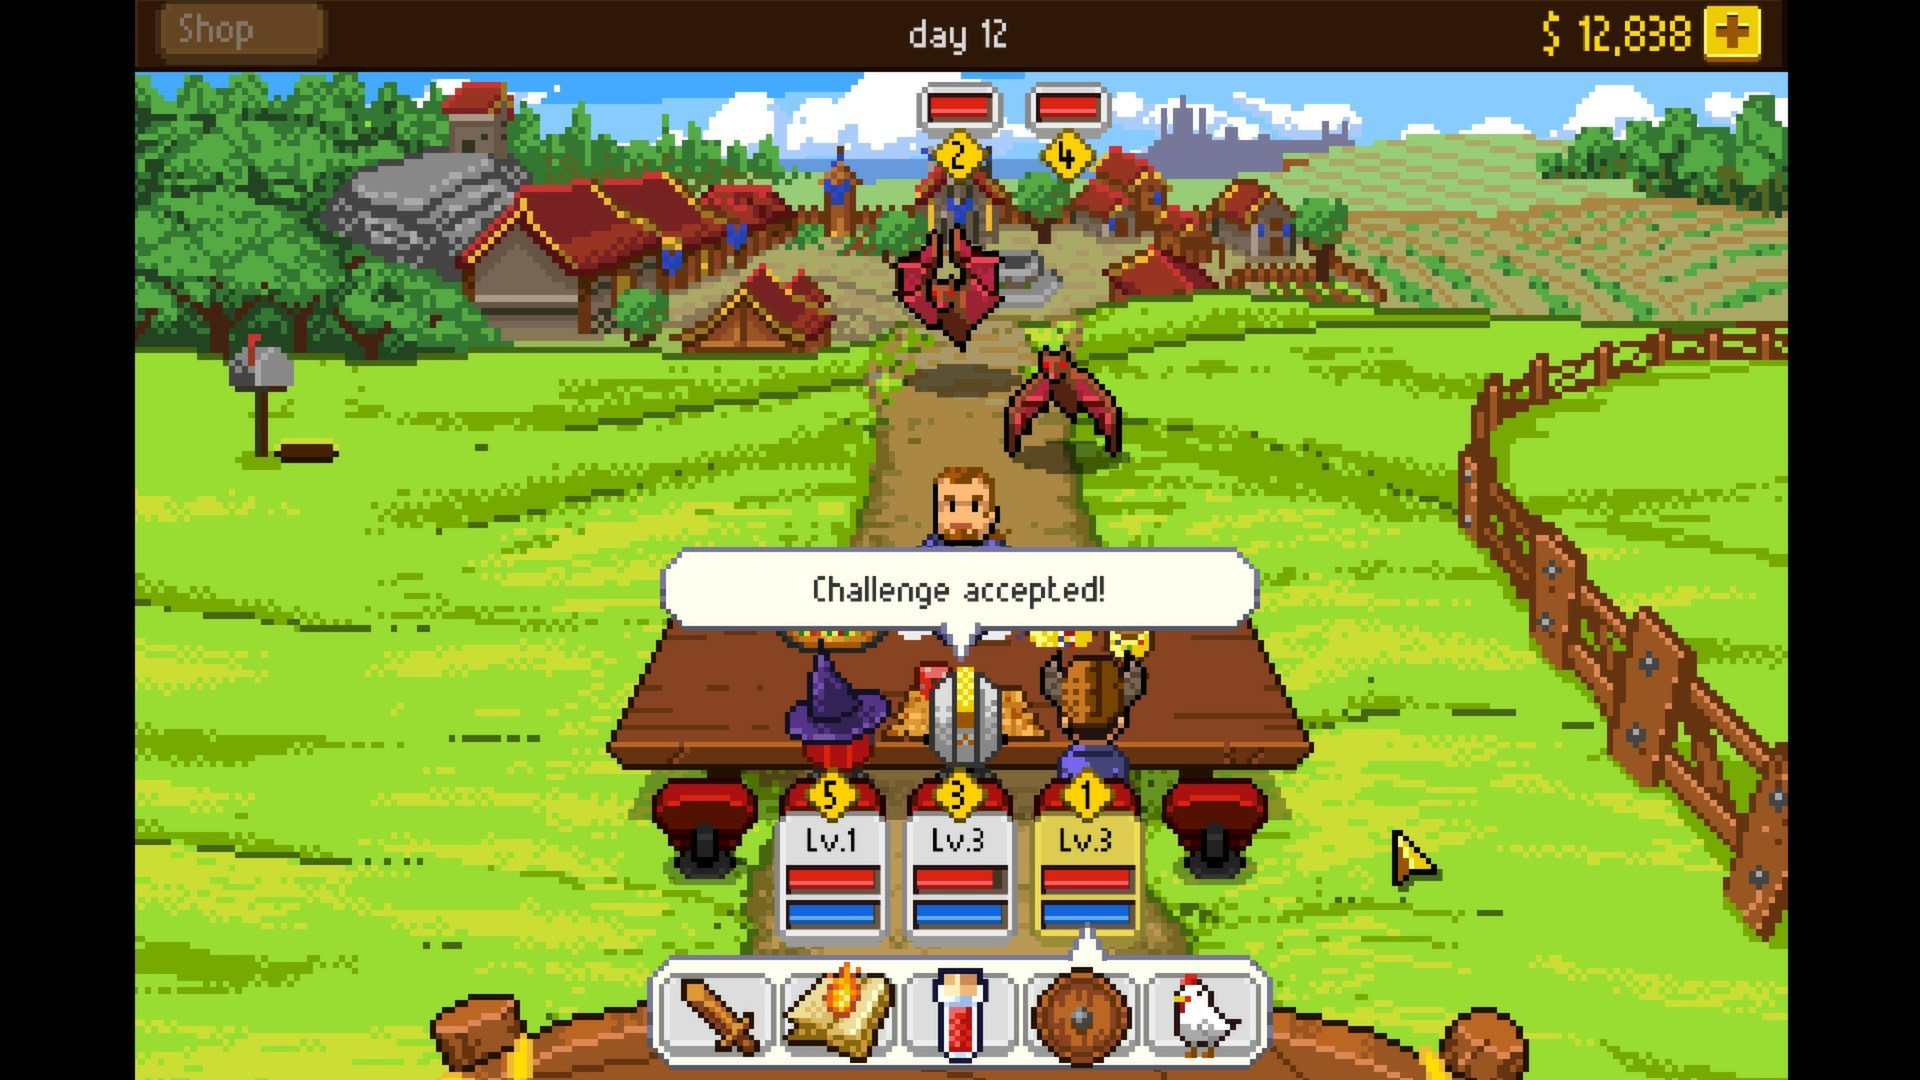 Knights of Pen & Paper Review: The Pen is Mightier than the Sword!